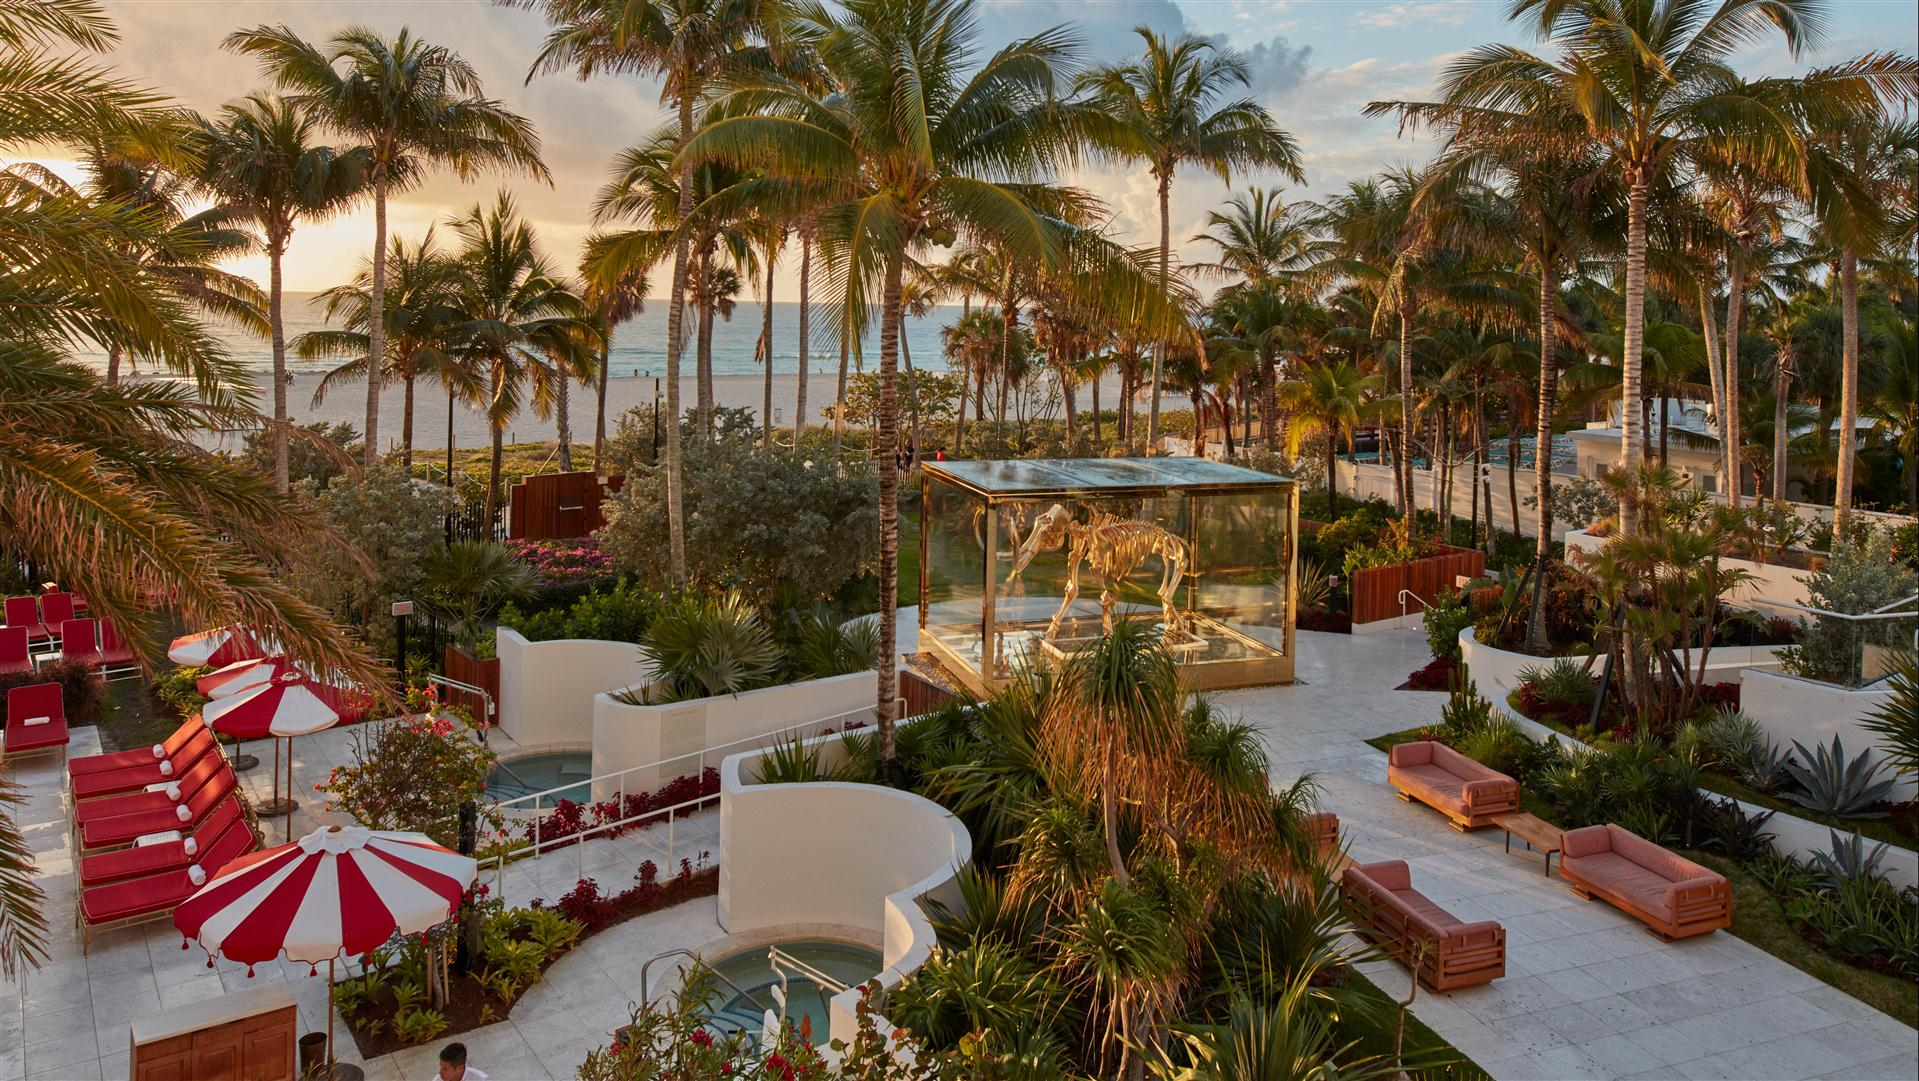 meetings and events at faena hotel miami beach, miami beach